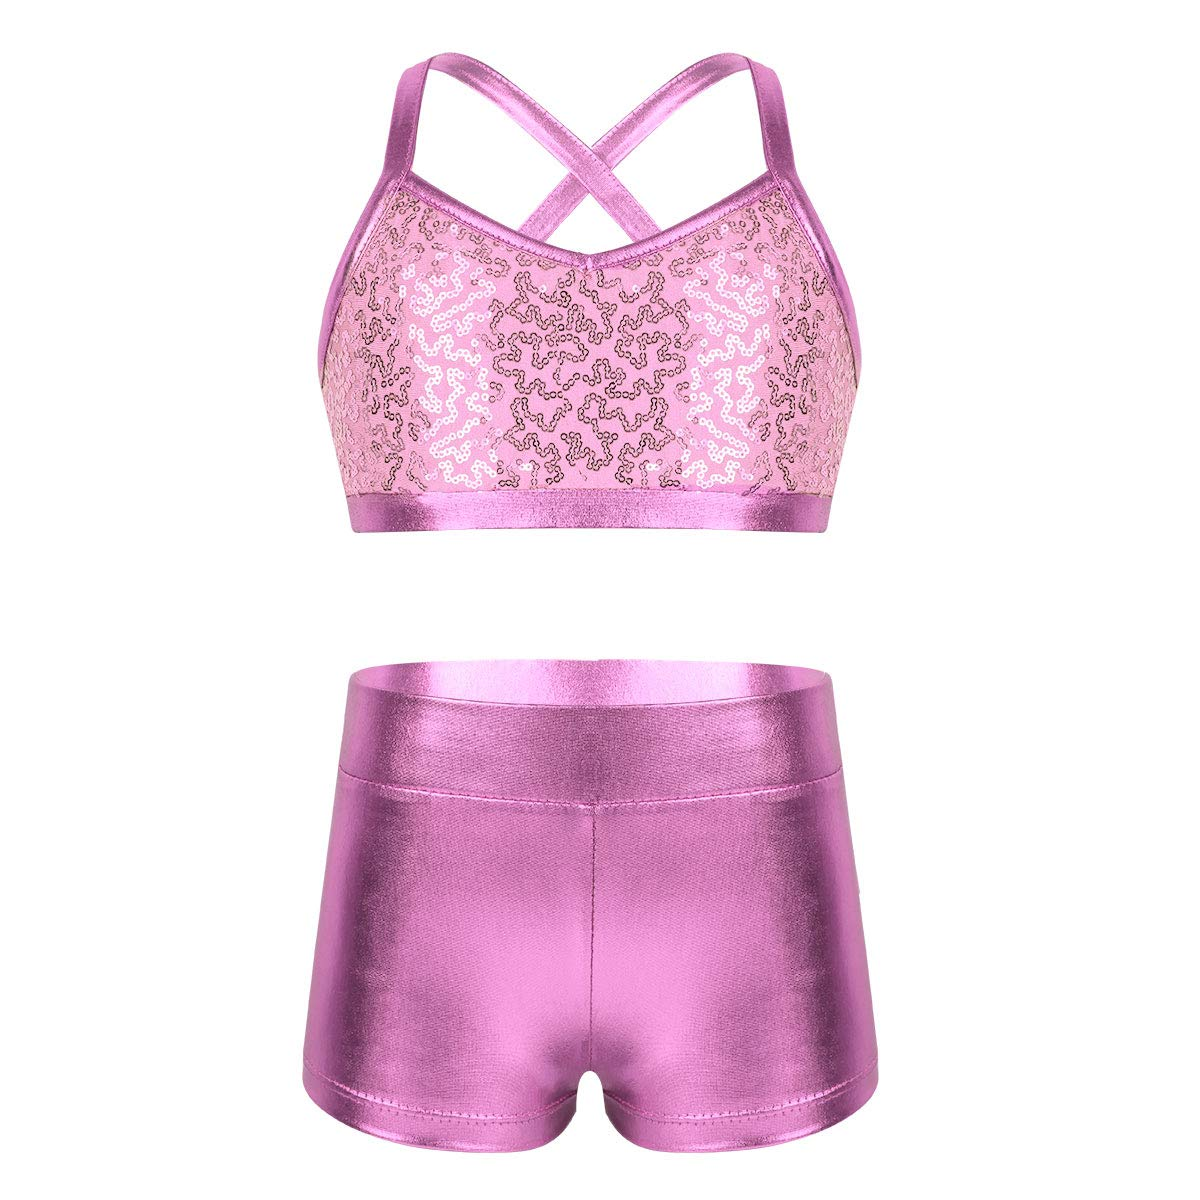 Alvivi Kids Girls Two-Piece Sequins Sports Dance Outfit Crop Top with Shorts Gymnastics Dancing Swimming Tankini Costume